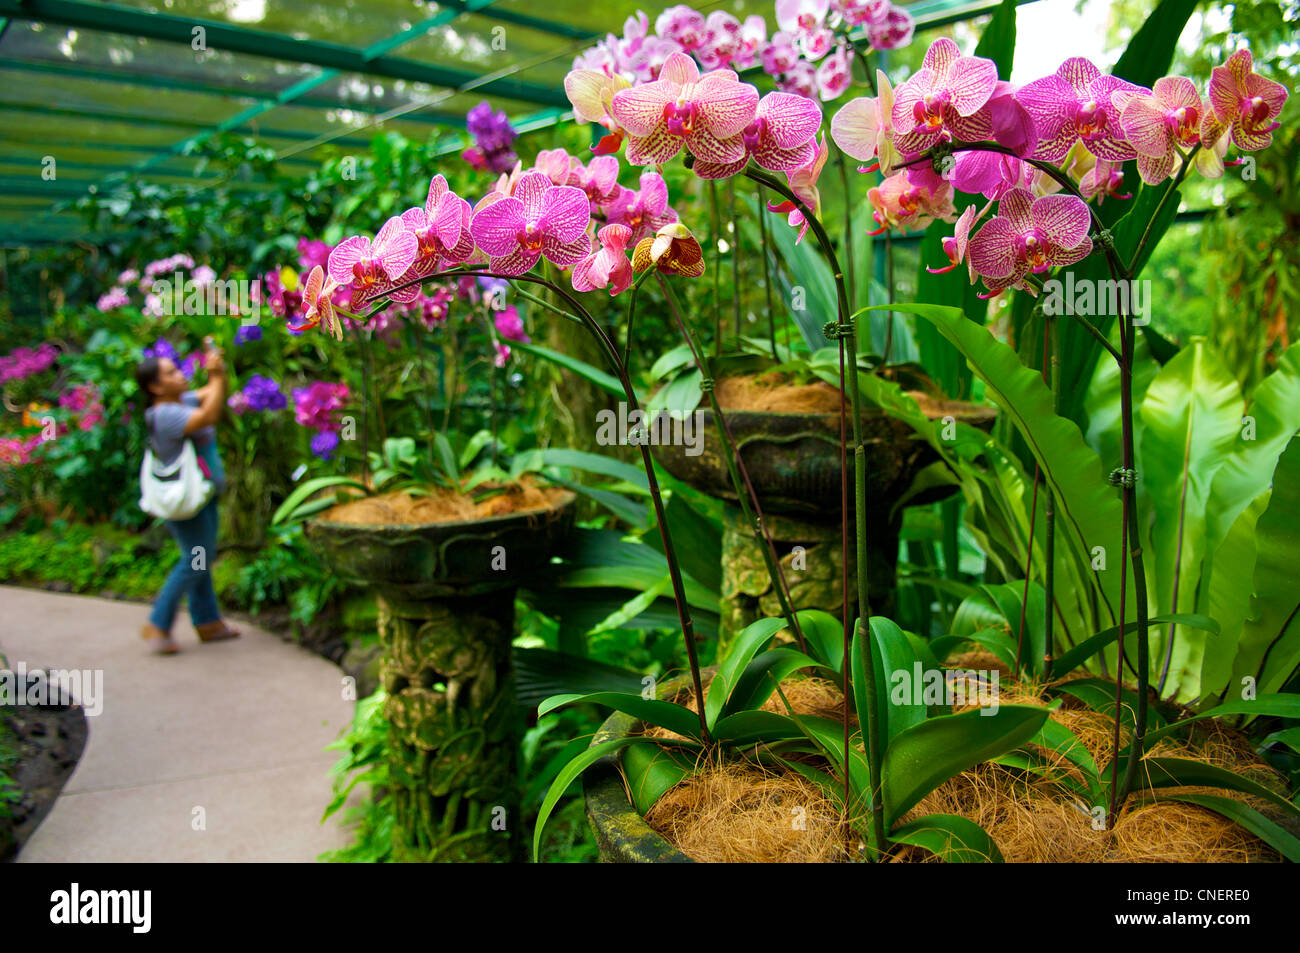 Orchids In A Greenhouse In The National Orchid Garden In The Botanic Gardens  In Singapore